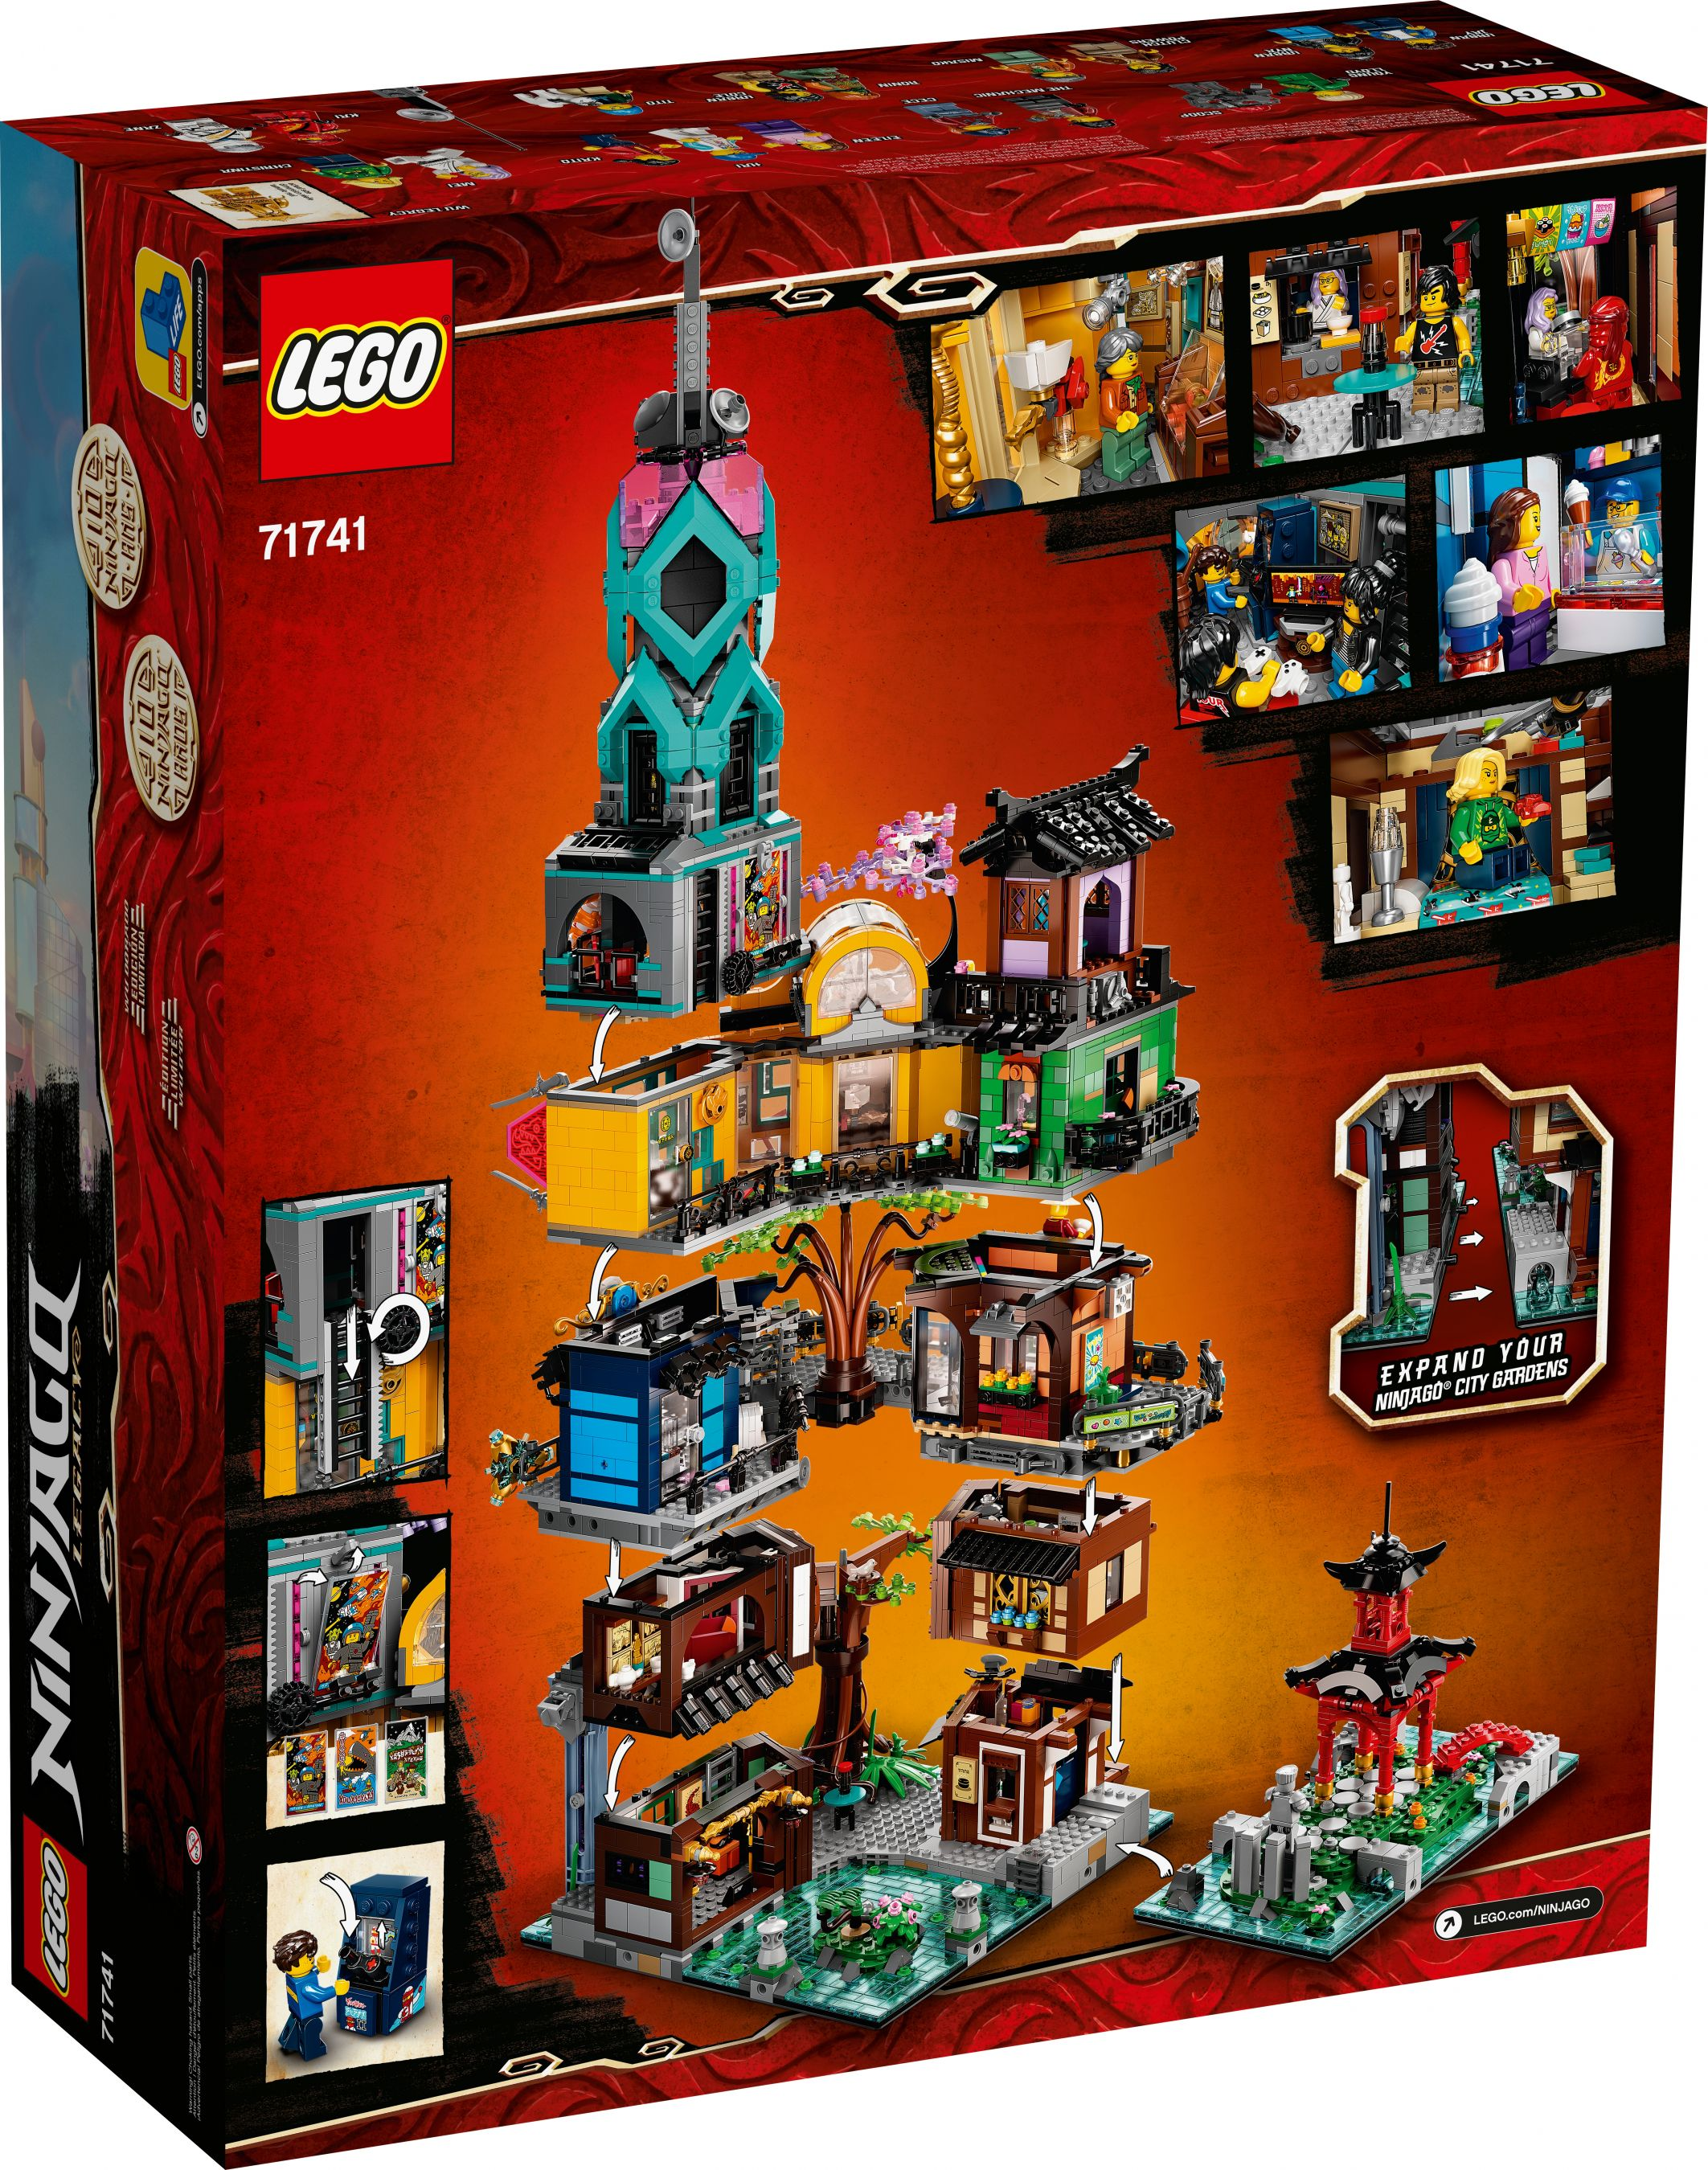 LEGO The LEGO Ninjago Movie 71741 Die Gärten von Ninjago City LEGO_71741_alt15.jpg